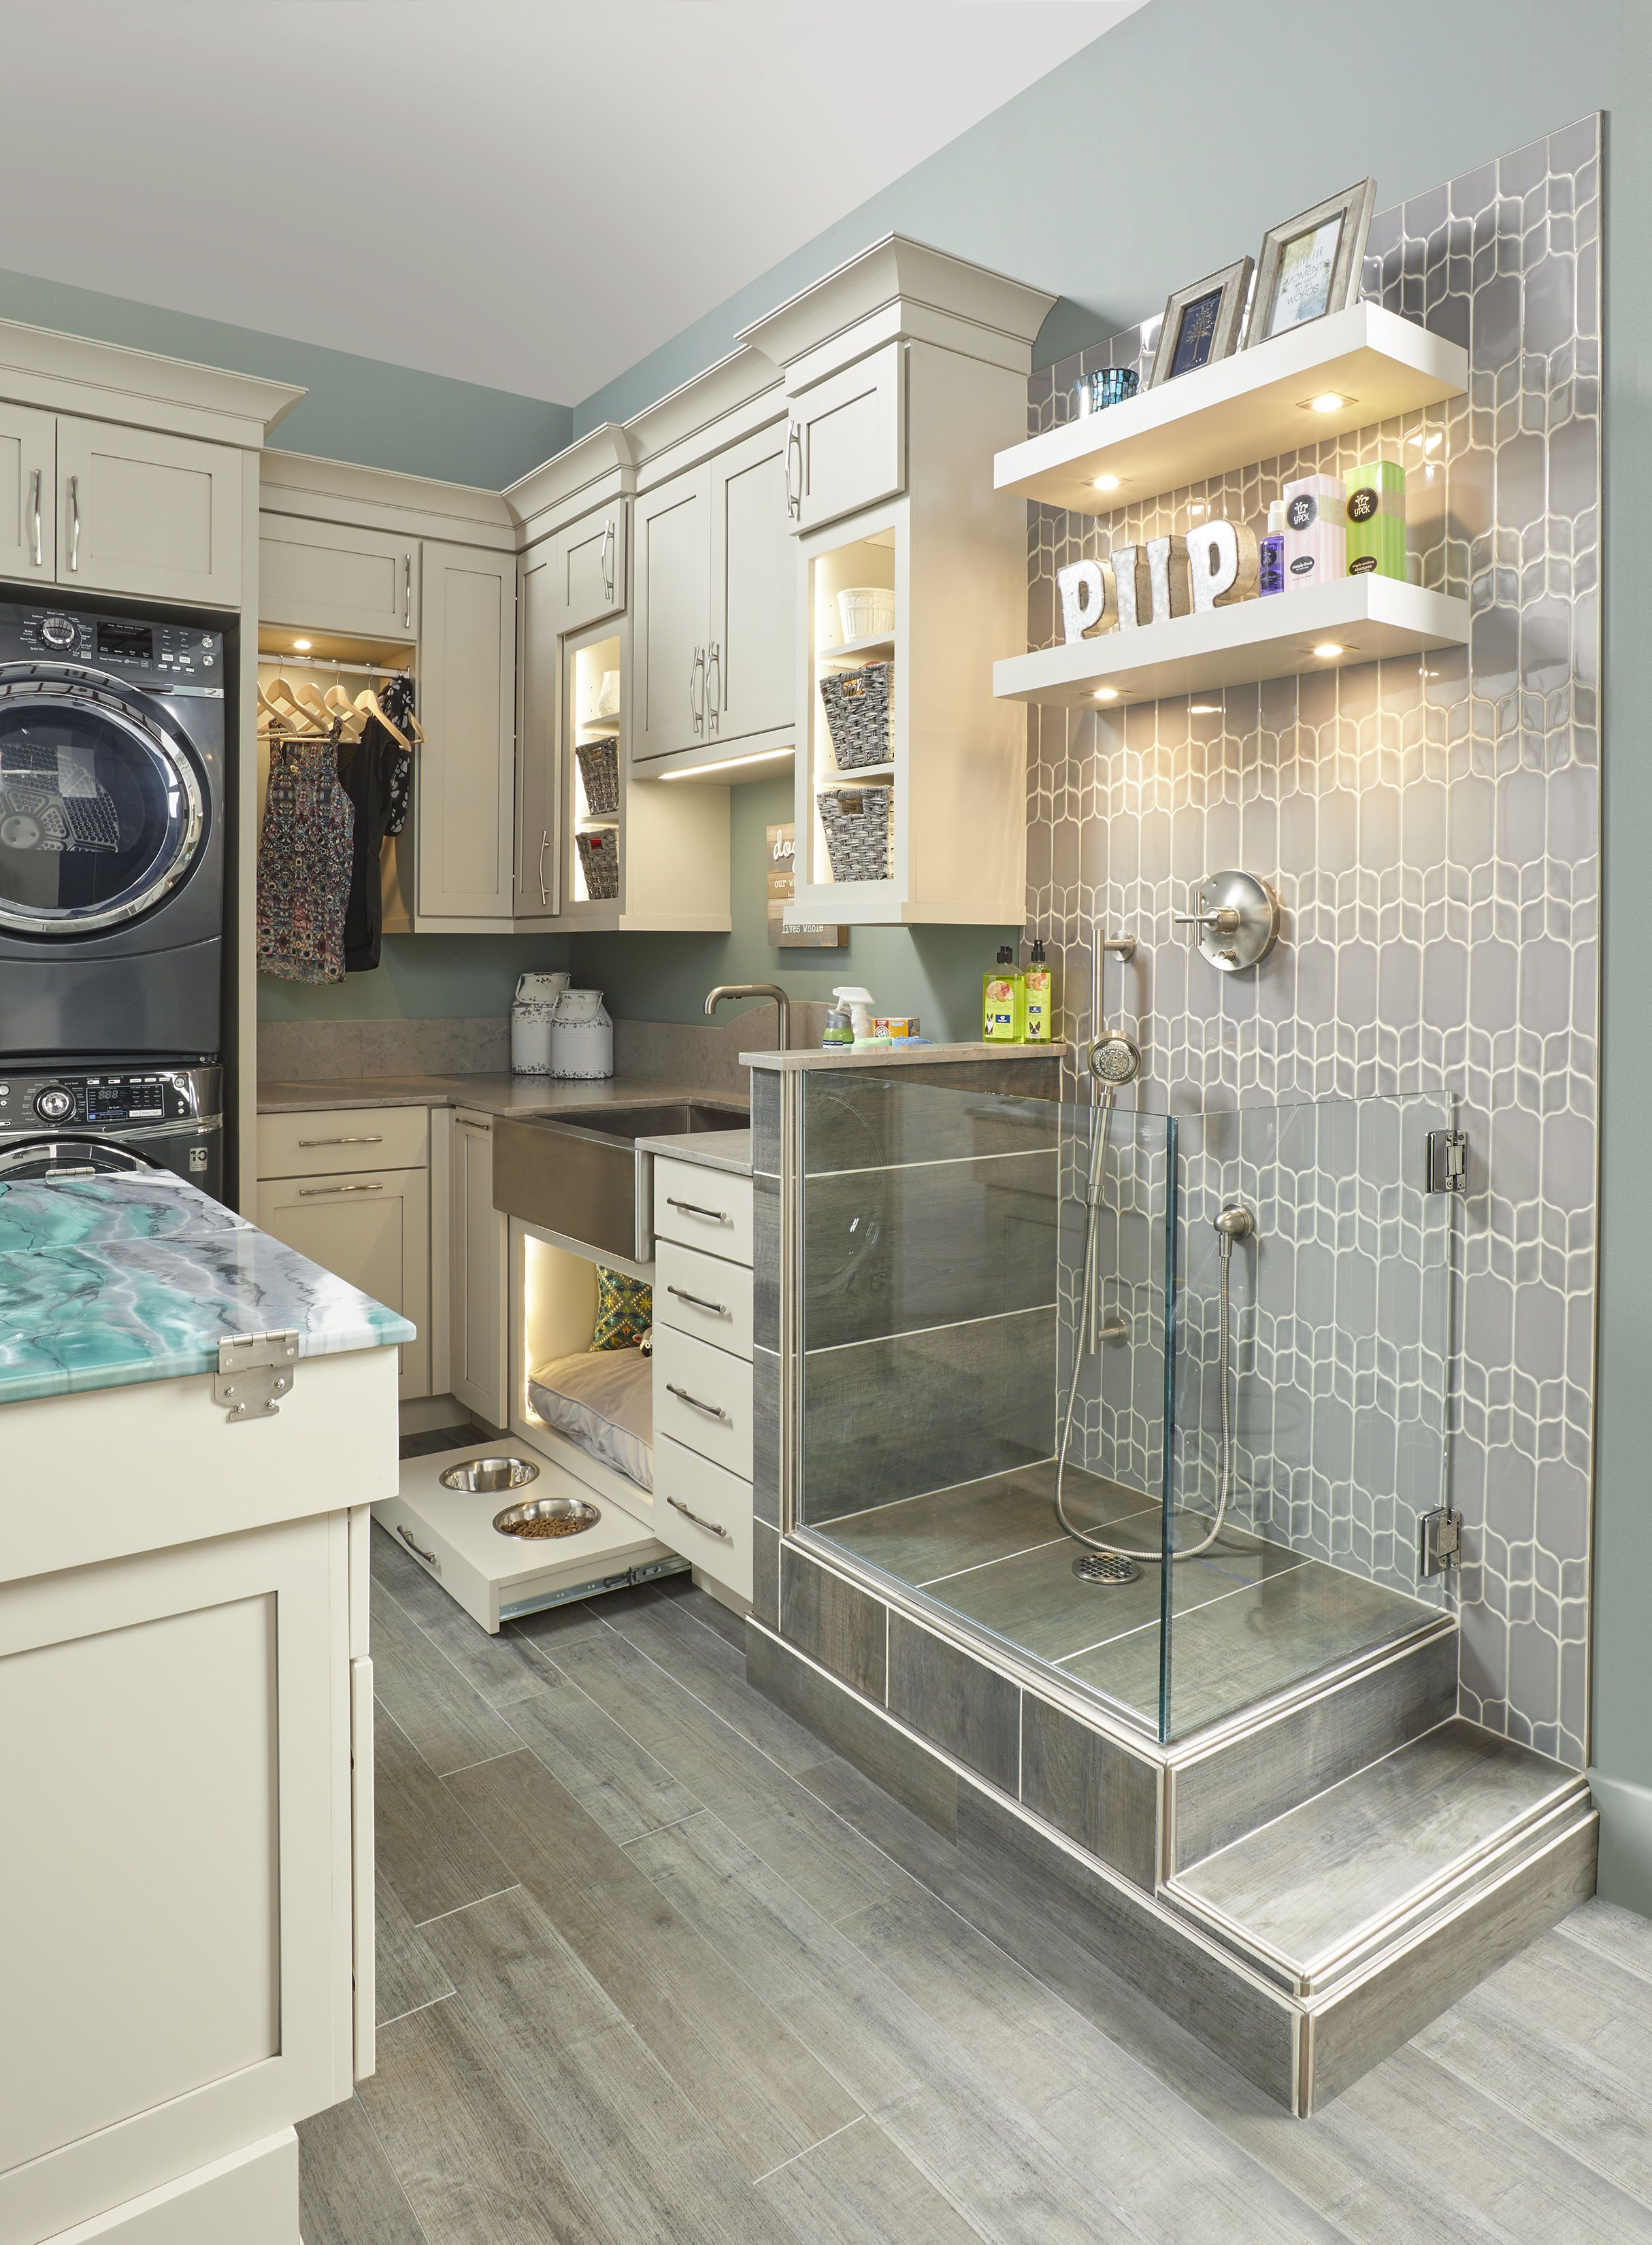 Pamper The Pooches In Your Life With A Wellborn Cabinet Dog Spa In the Laundry Room